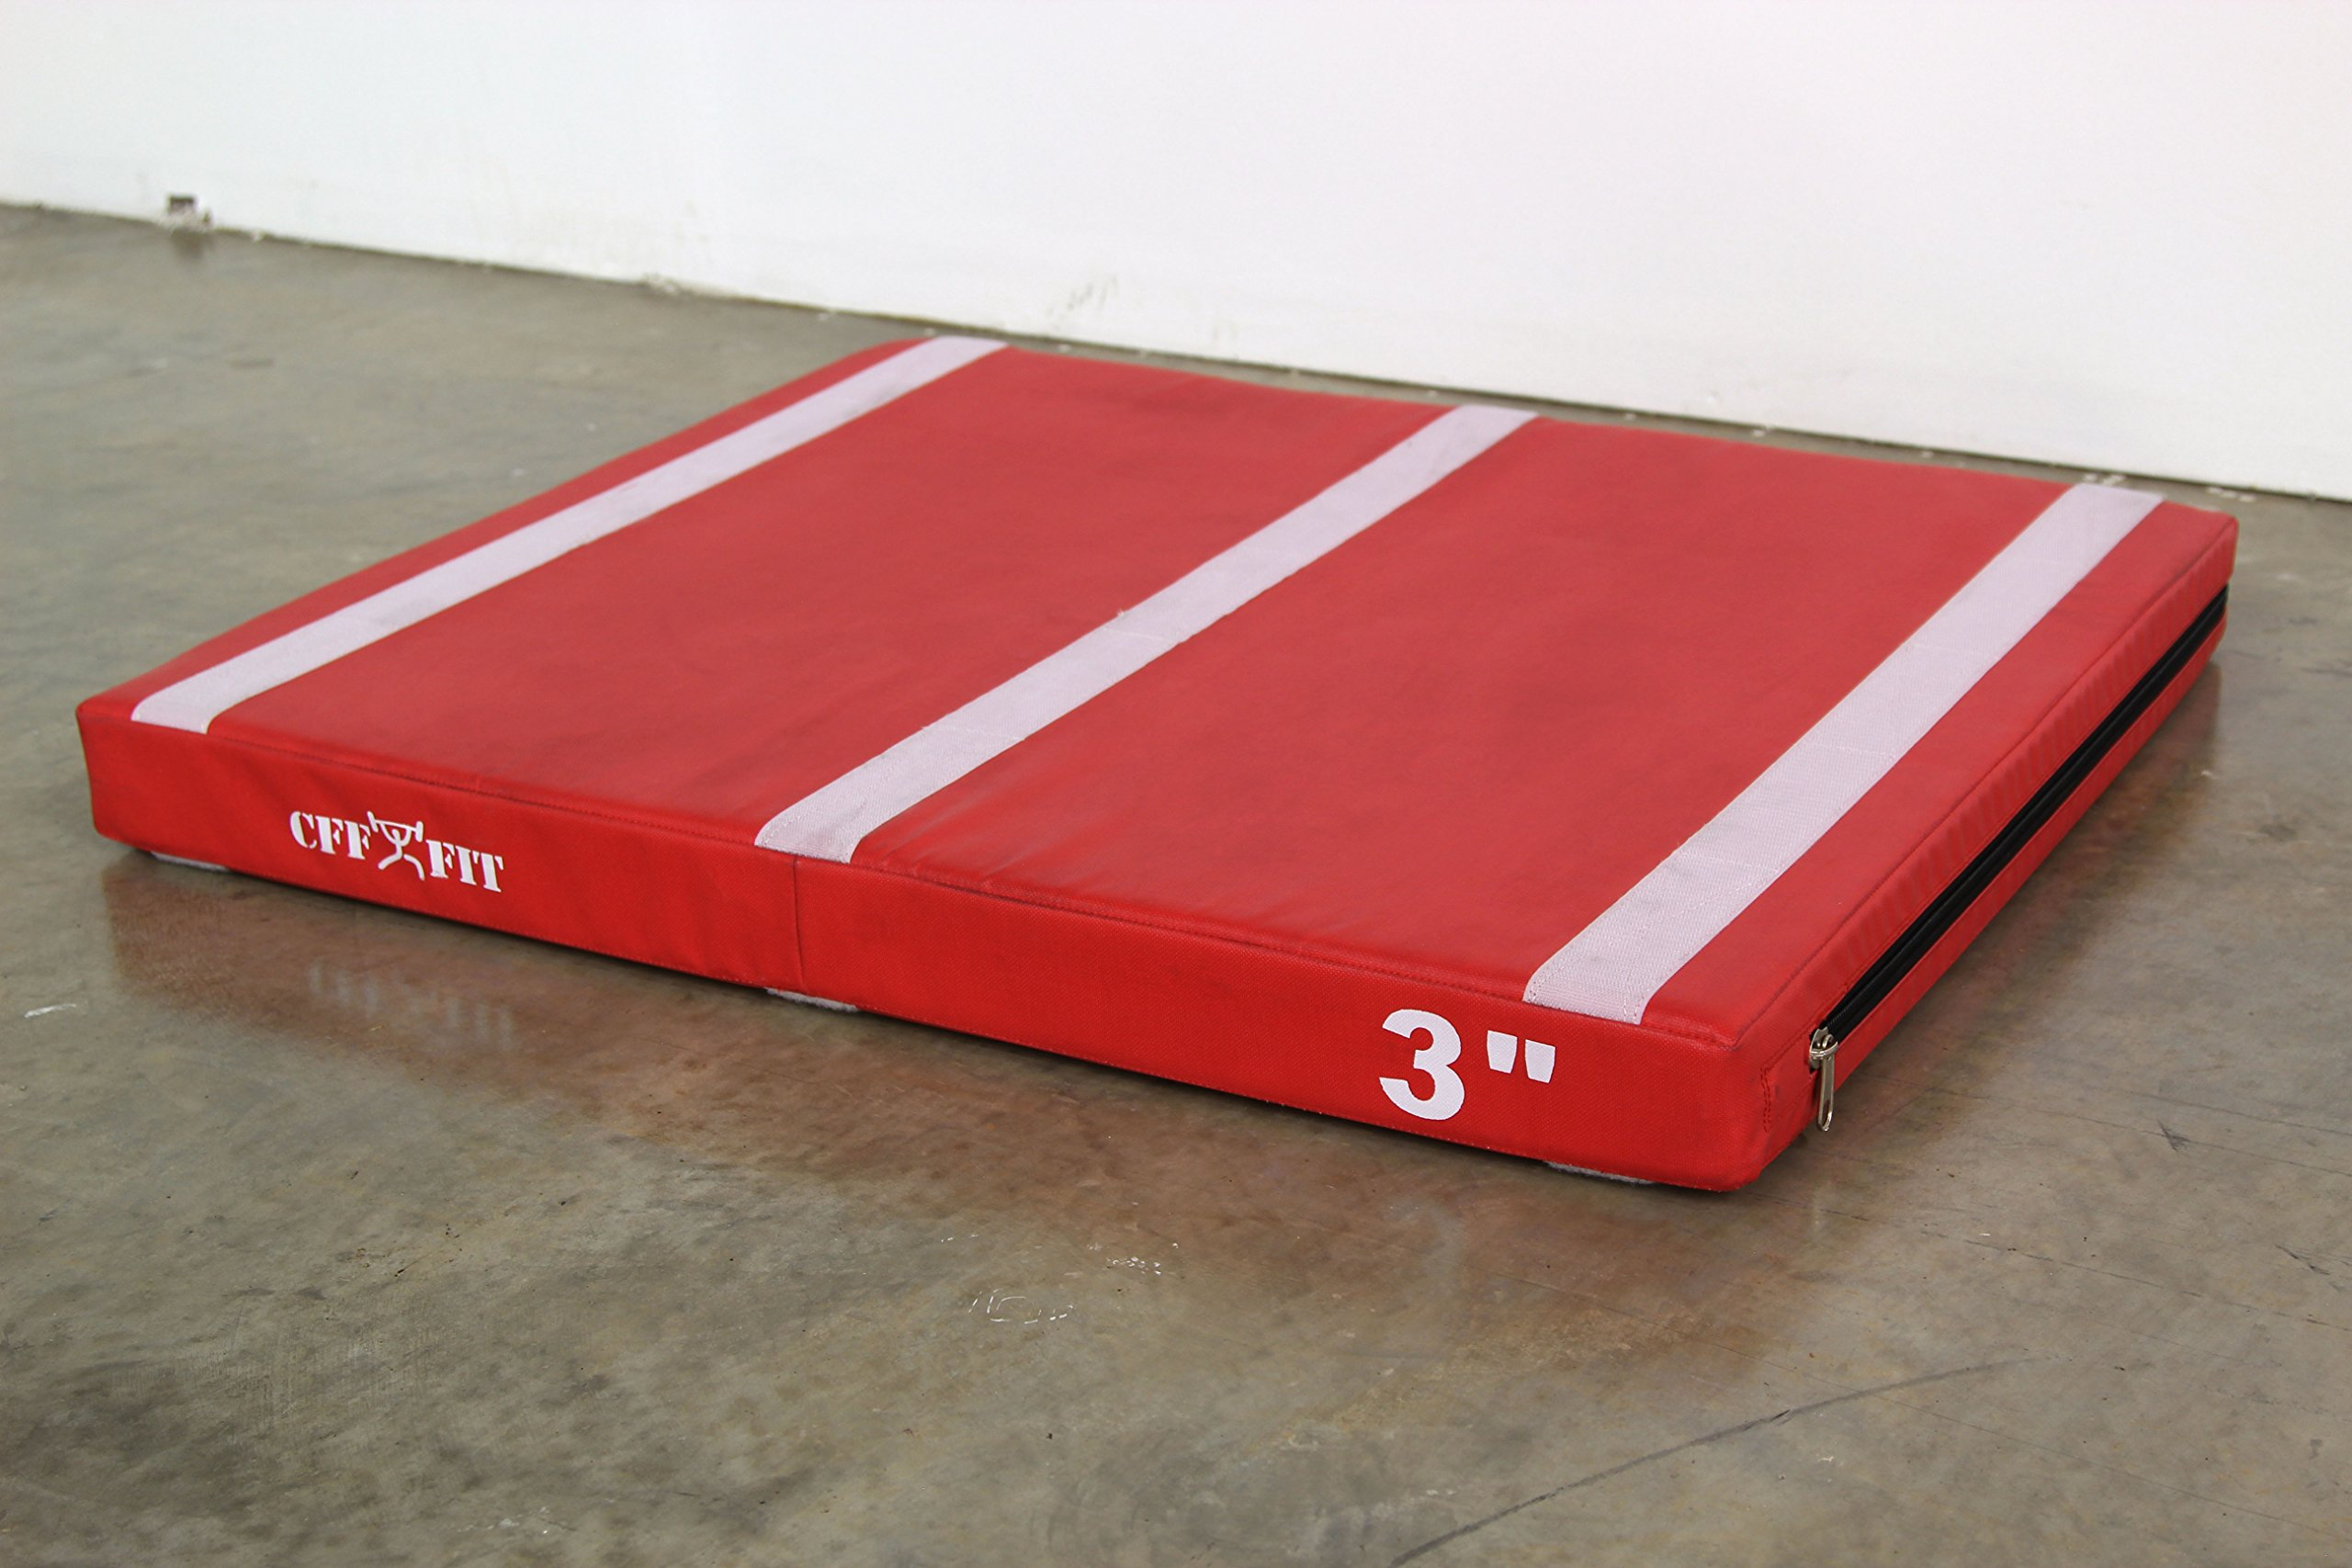 CFF Cushion Plyo Boxes (3 inch) by CFF FIT (Image #1)